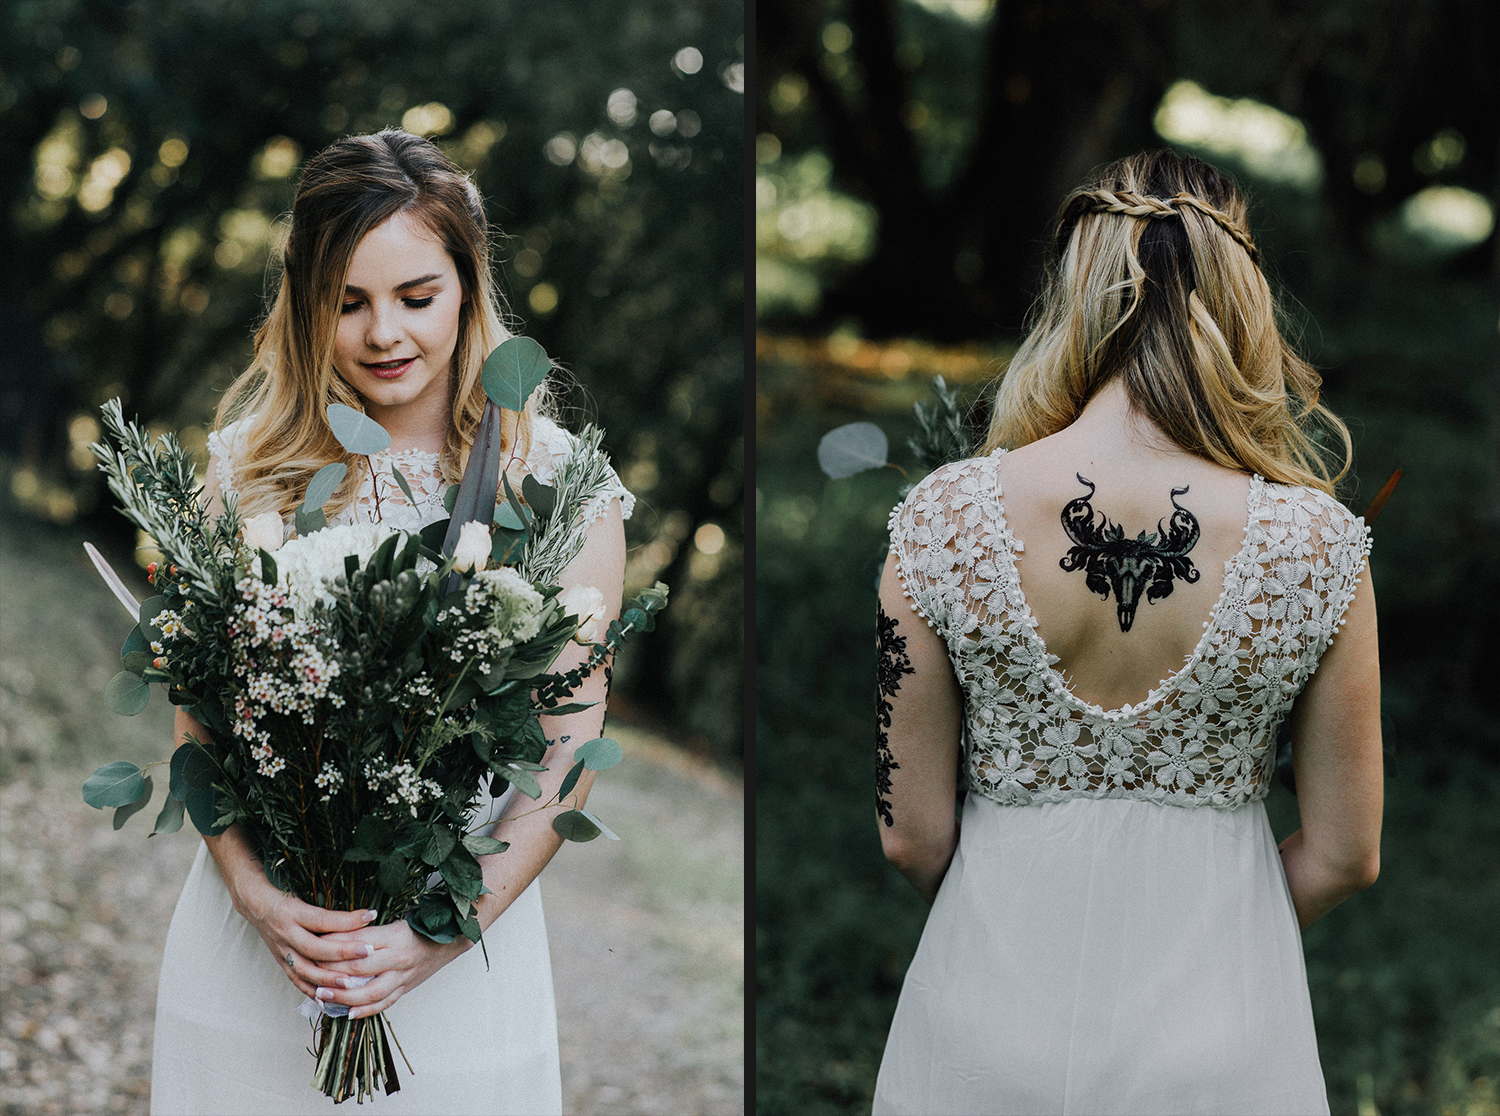 Image of bride holds the bouquet and the tattoo on her back